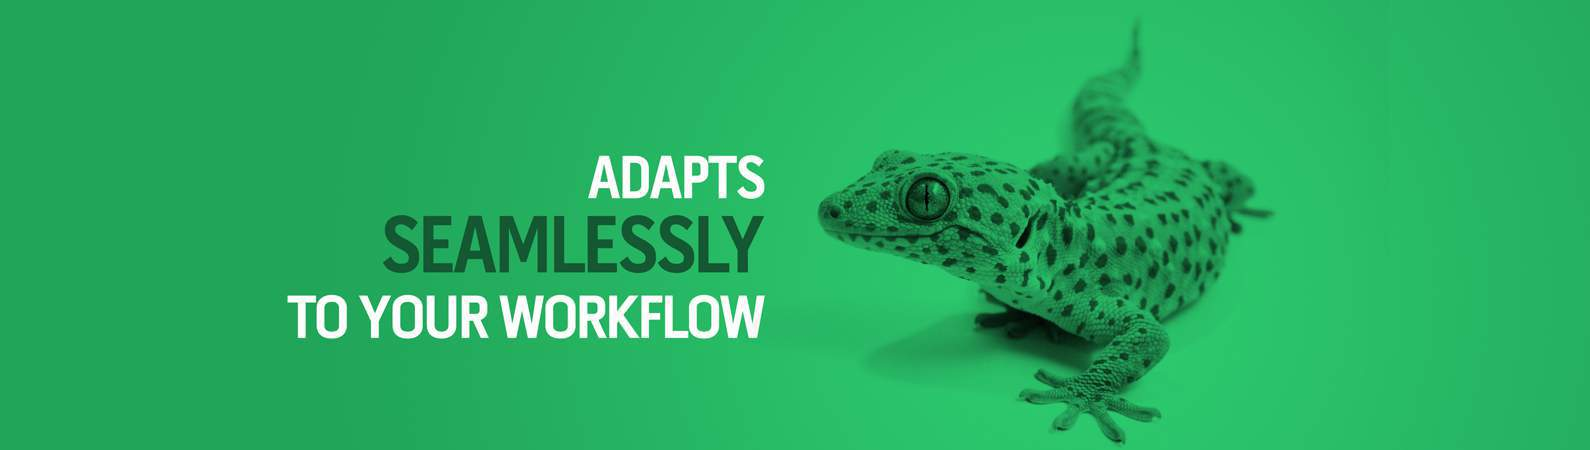 Adapts seamlessly to your workflow